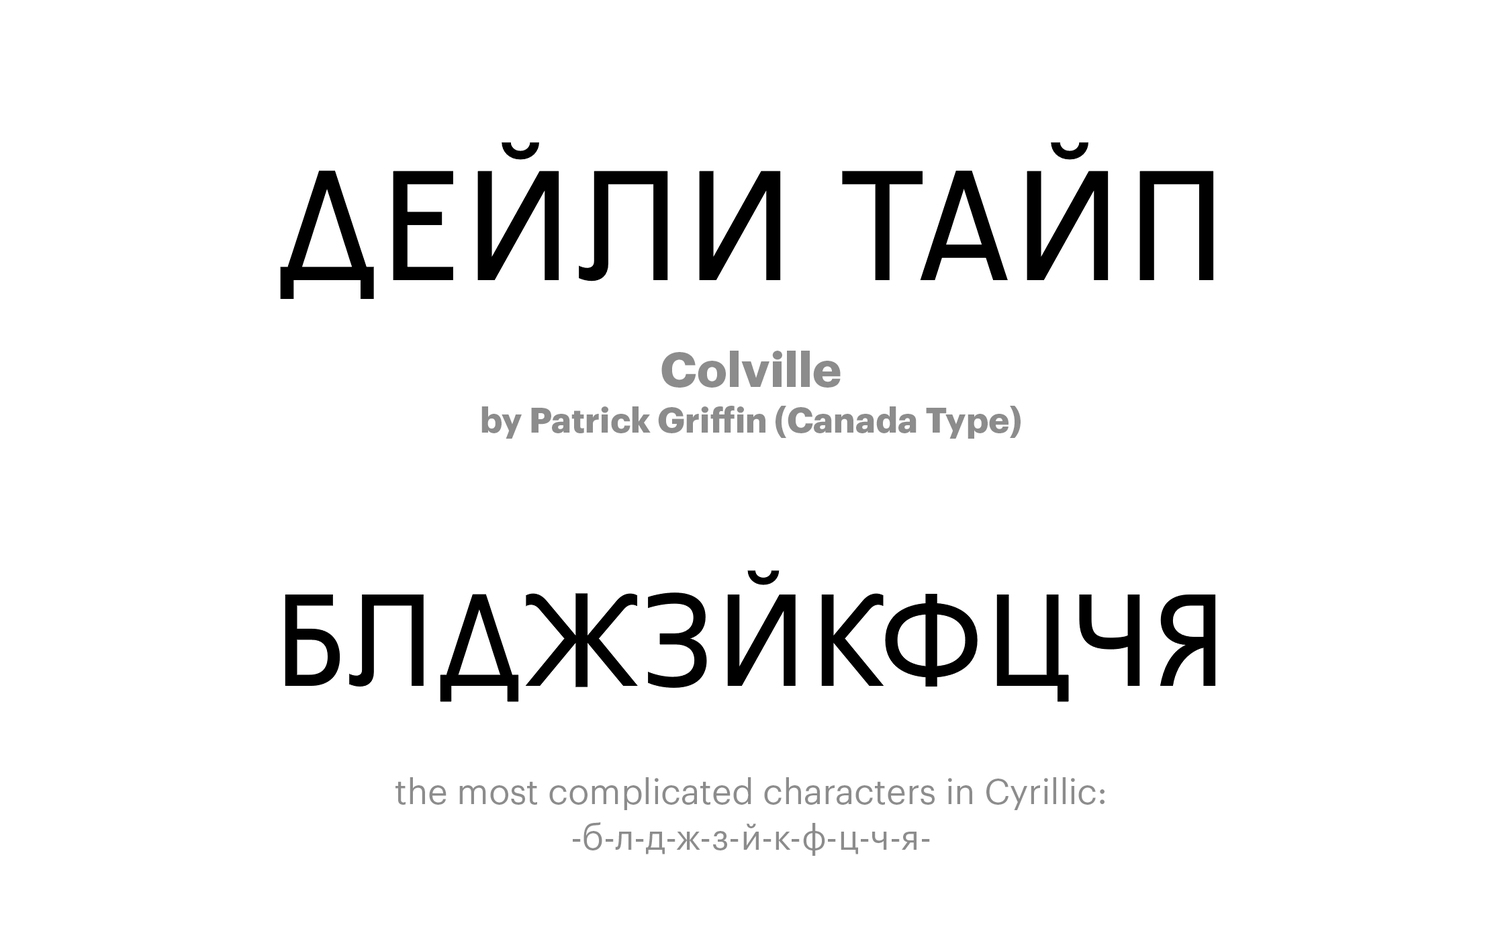 Colville-by-Patrick-Griffin-(Canada-Type)